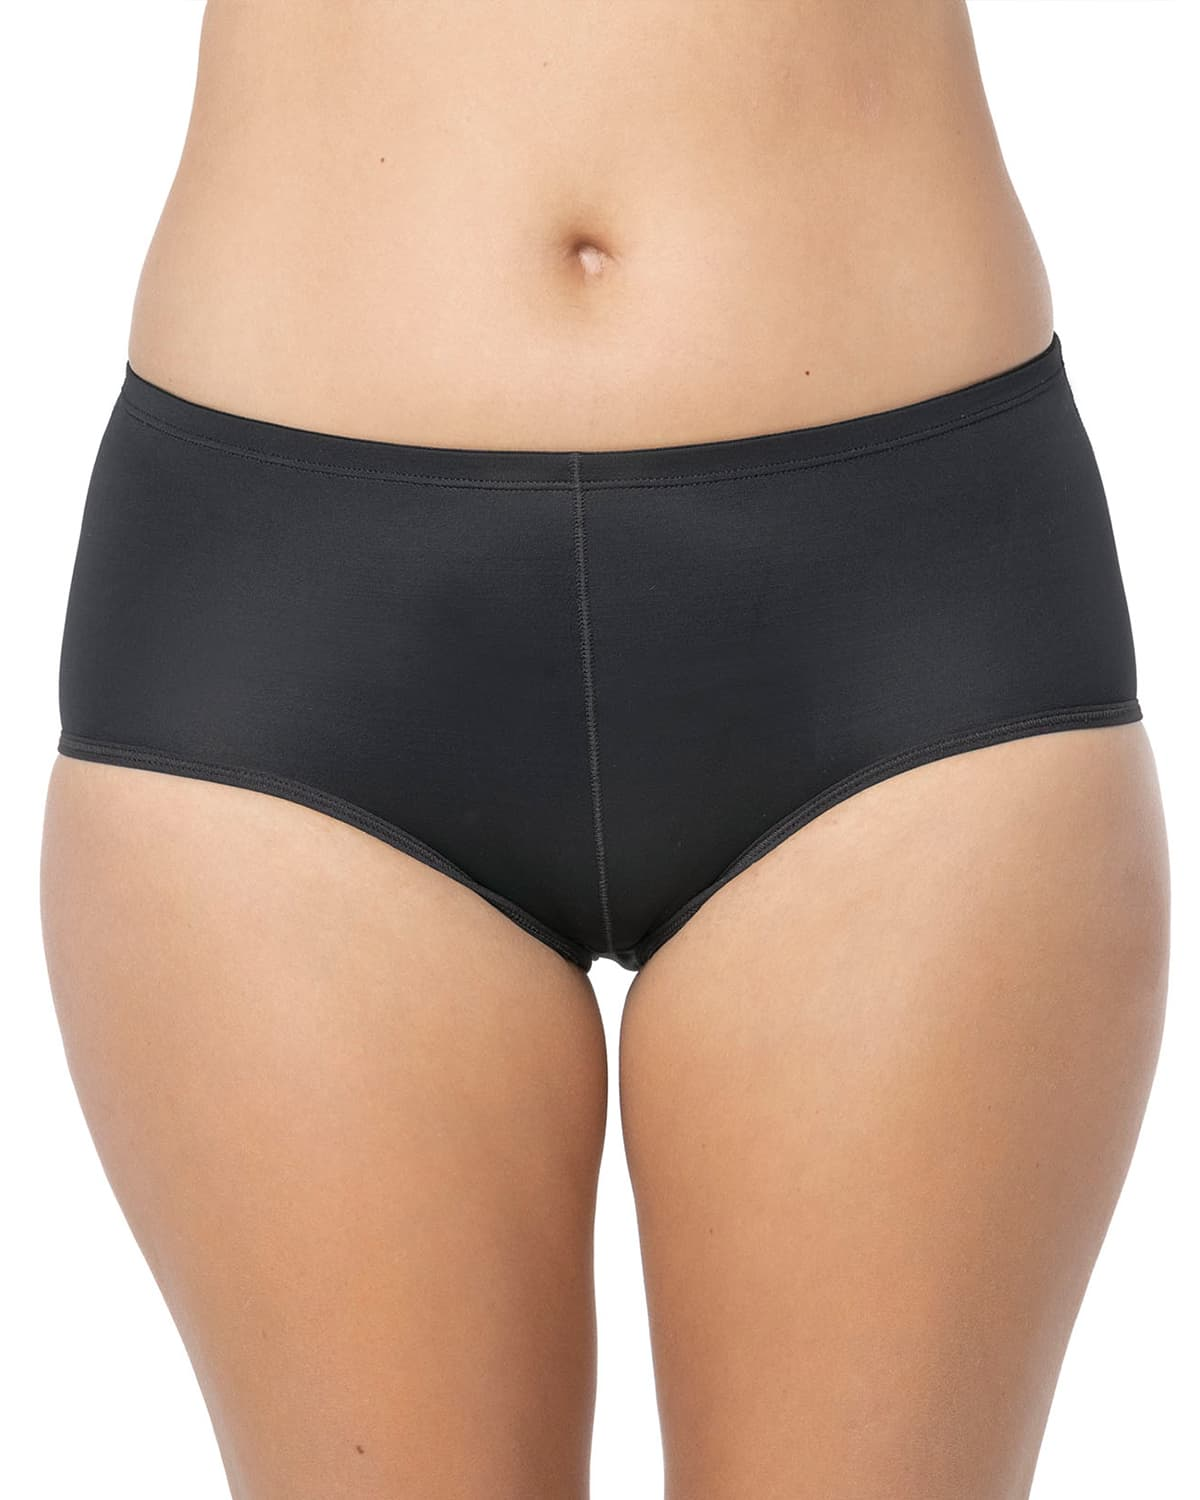 butt lifter padded panty - magic benefit-700- Black-MainImage